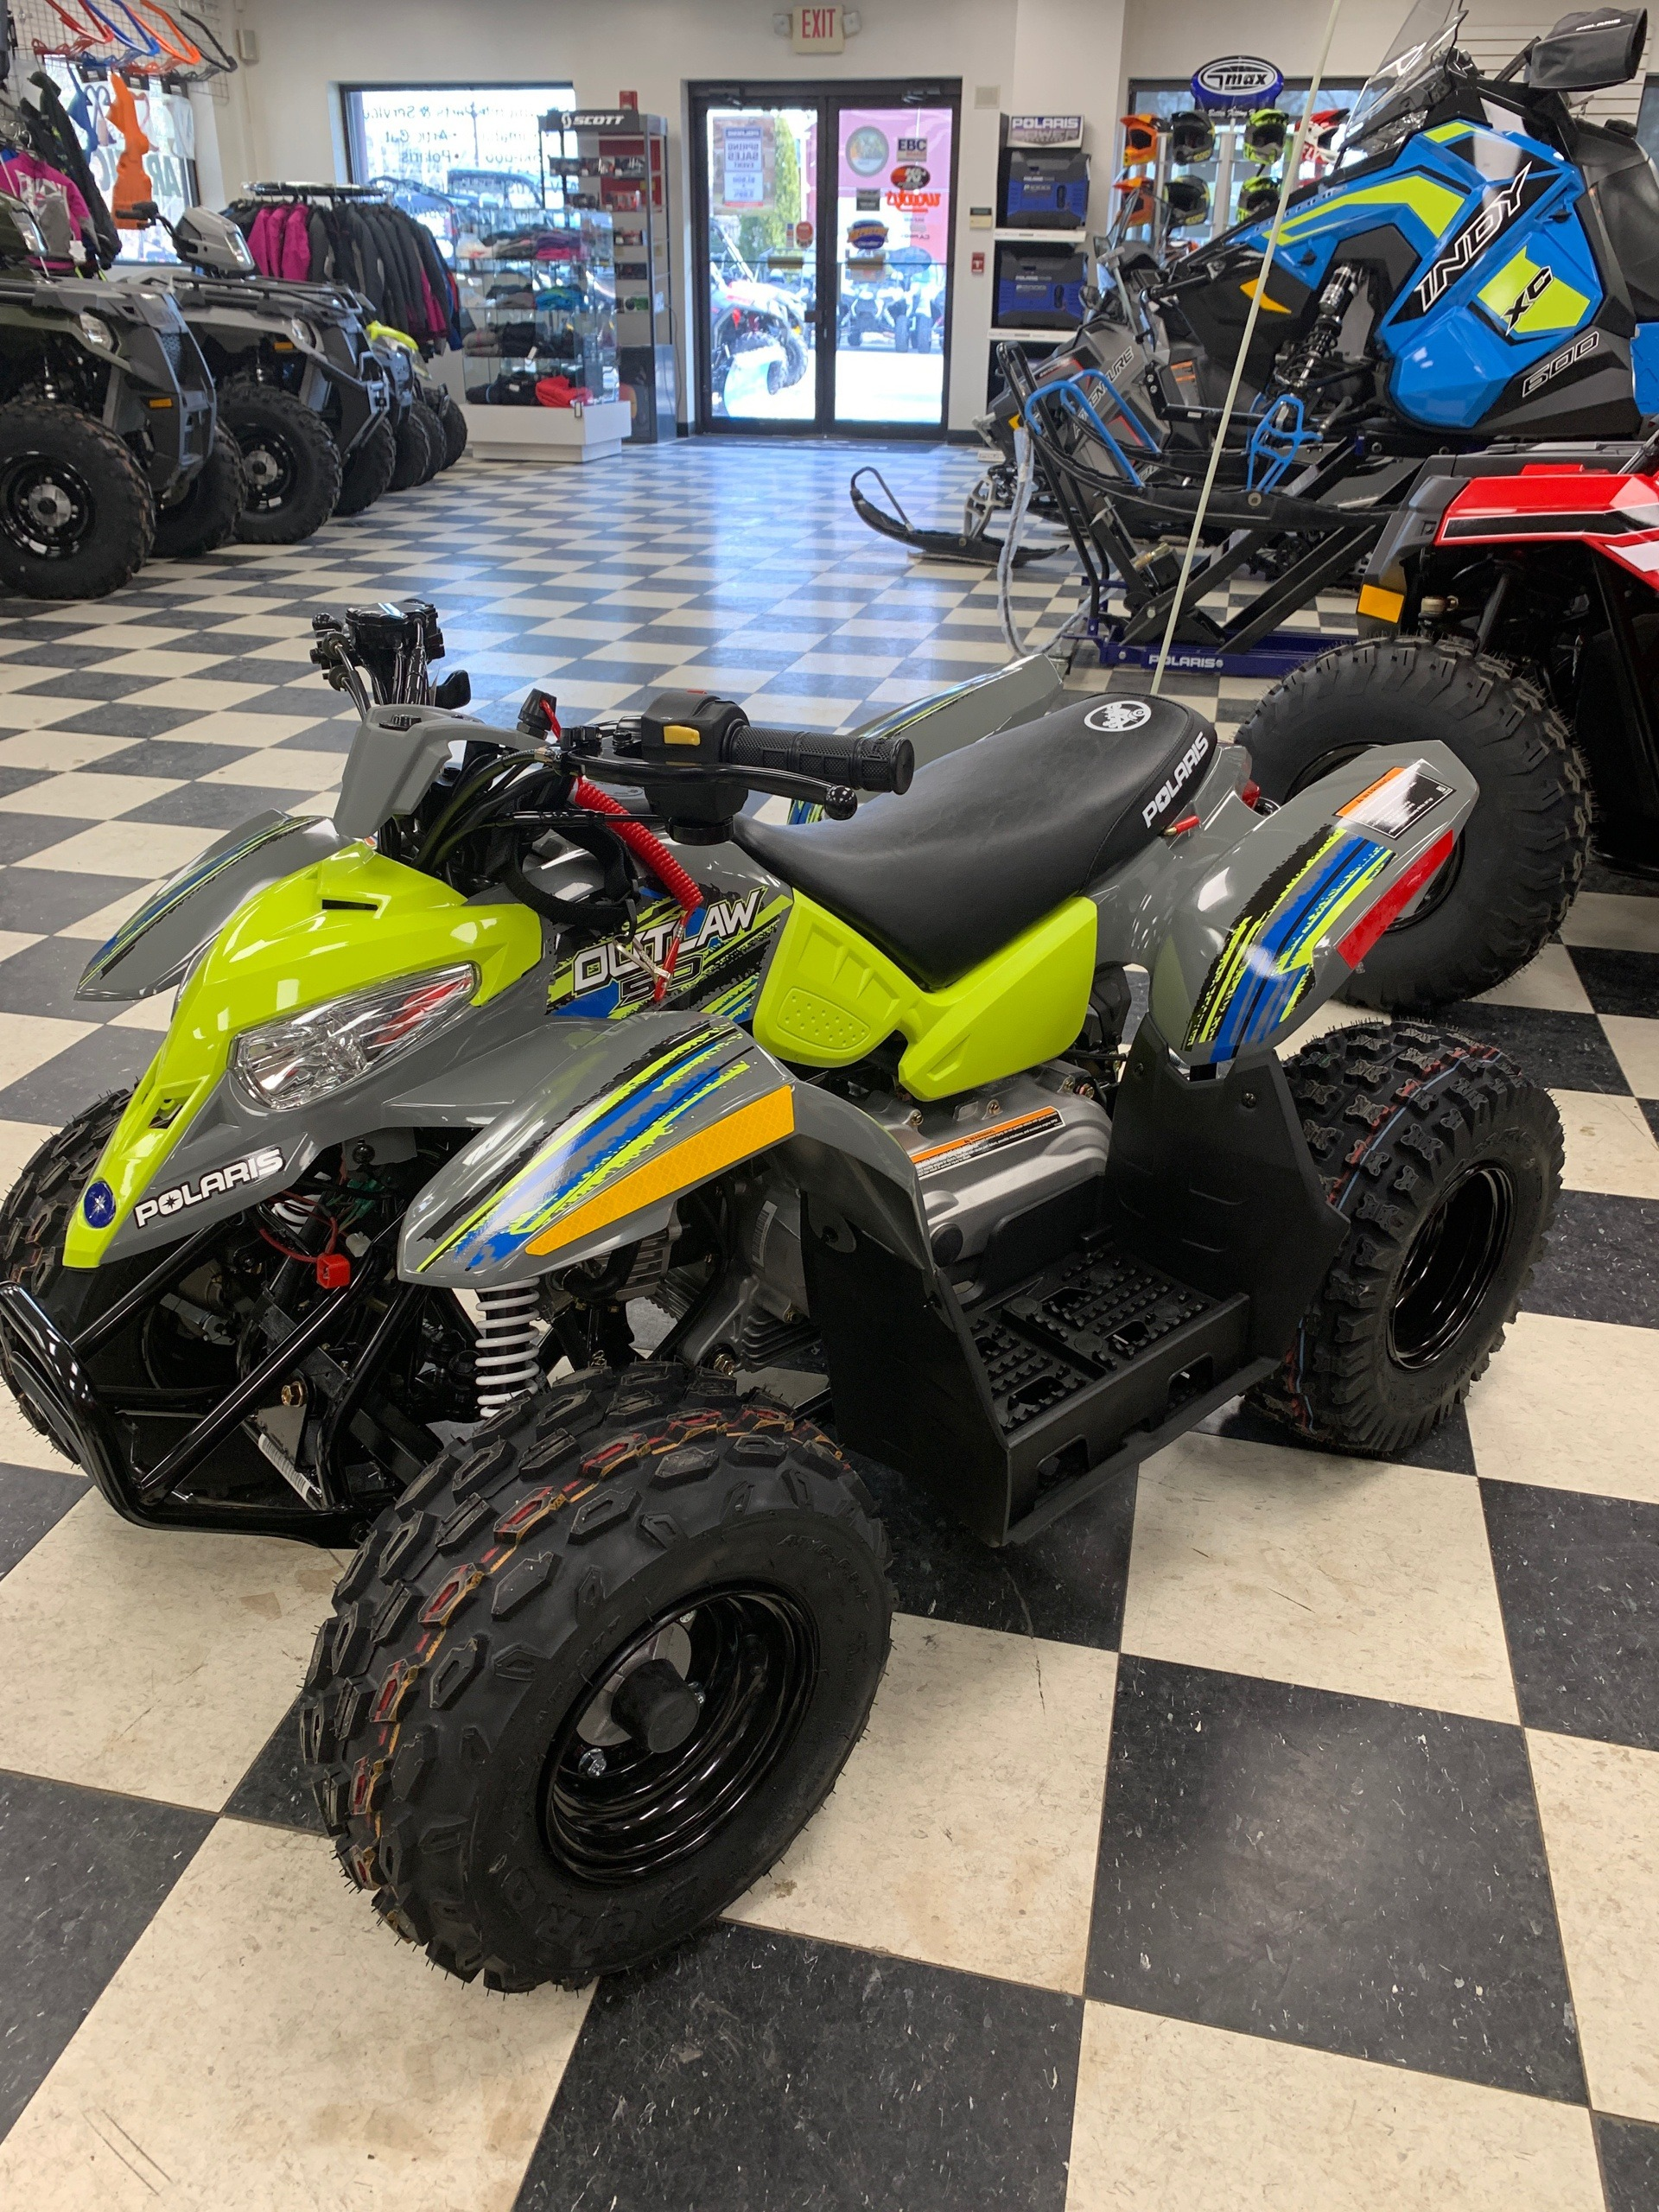 2019 Polaris Outlaw 50 in Milford, New Hampshire - Photo 3